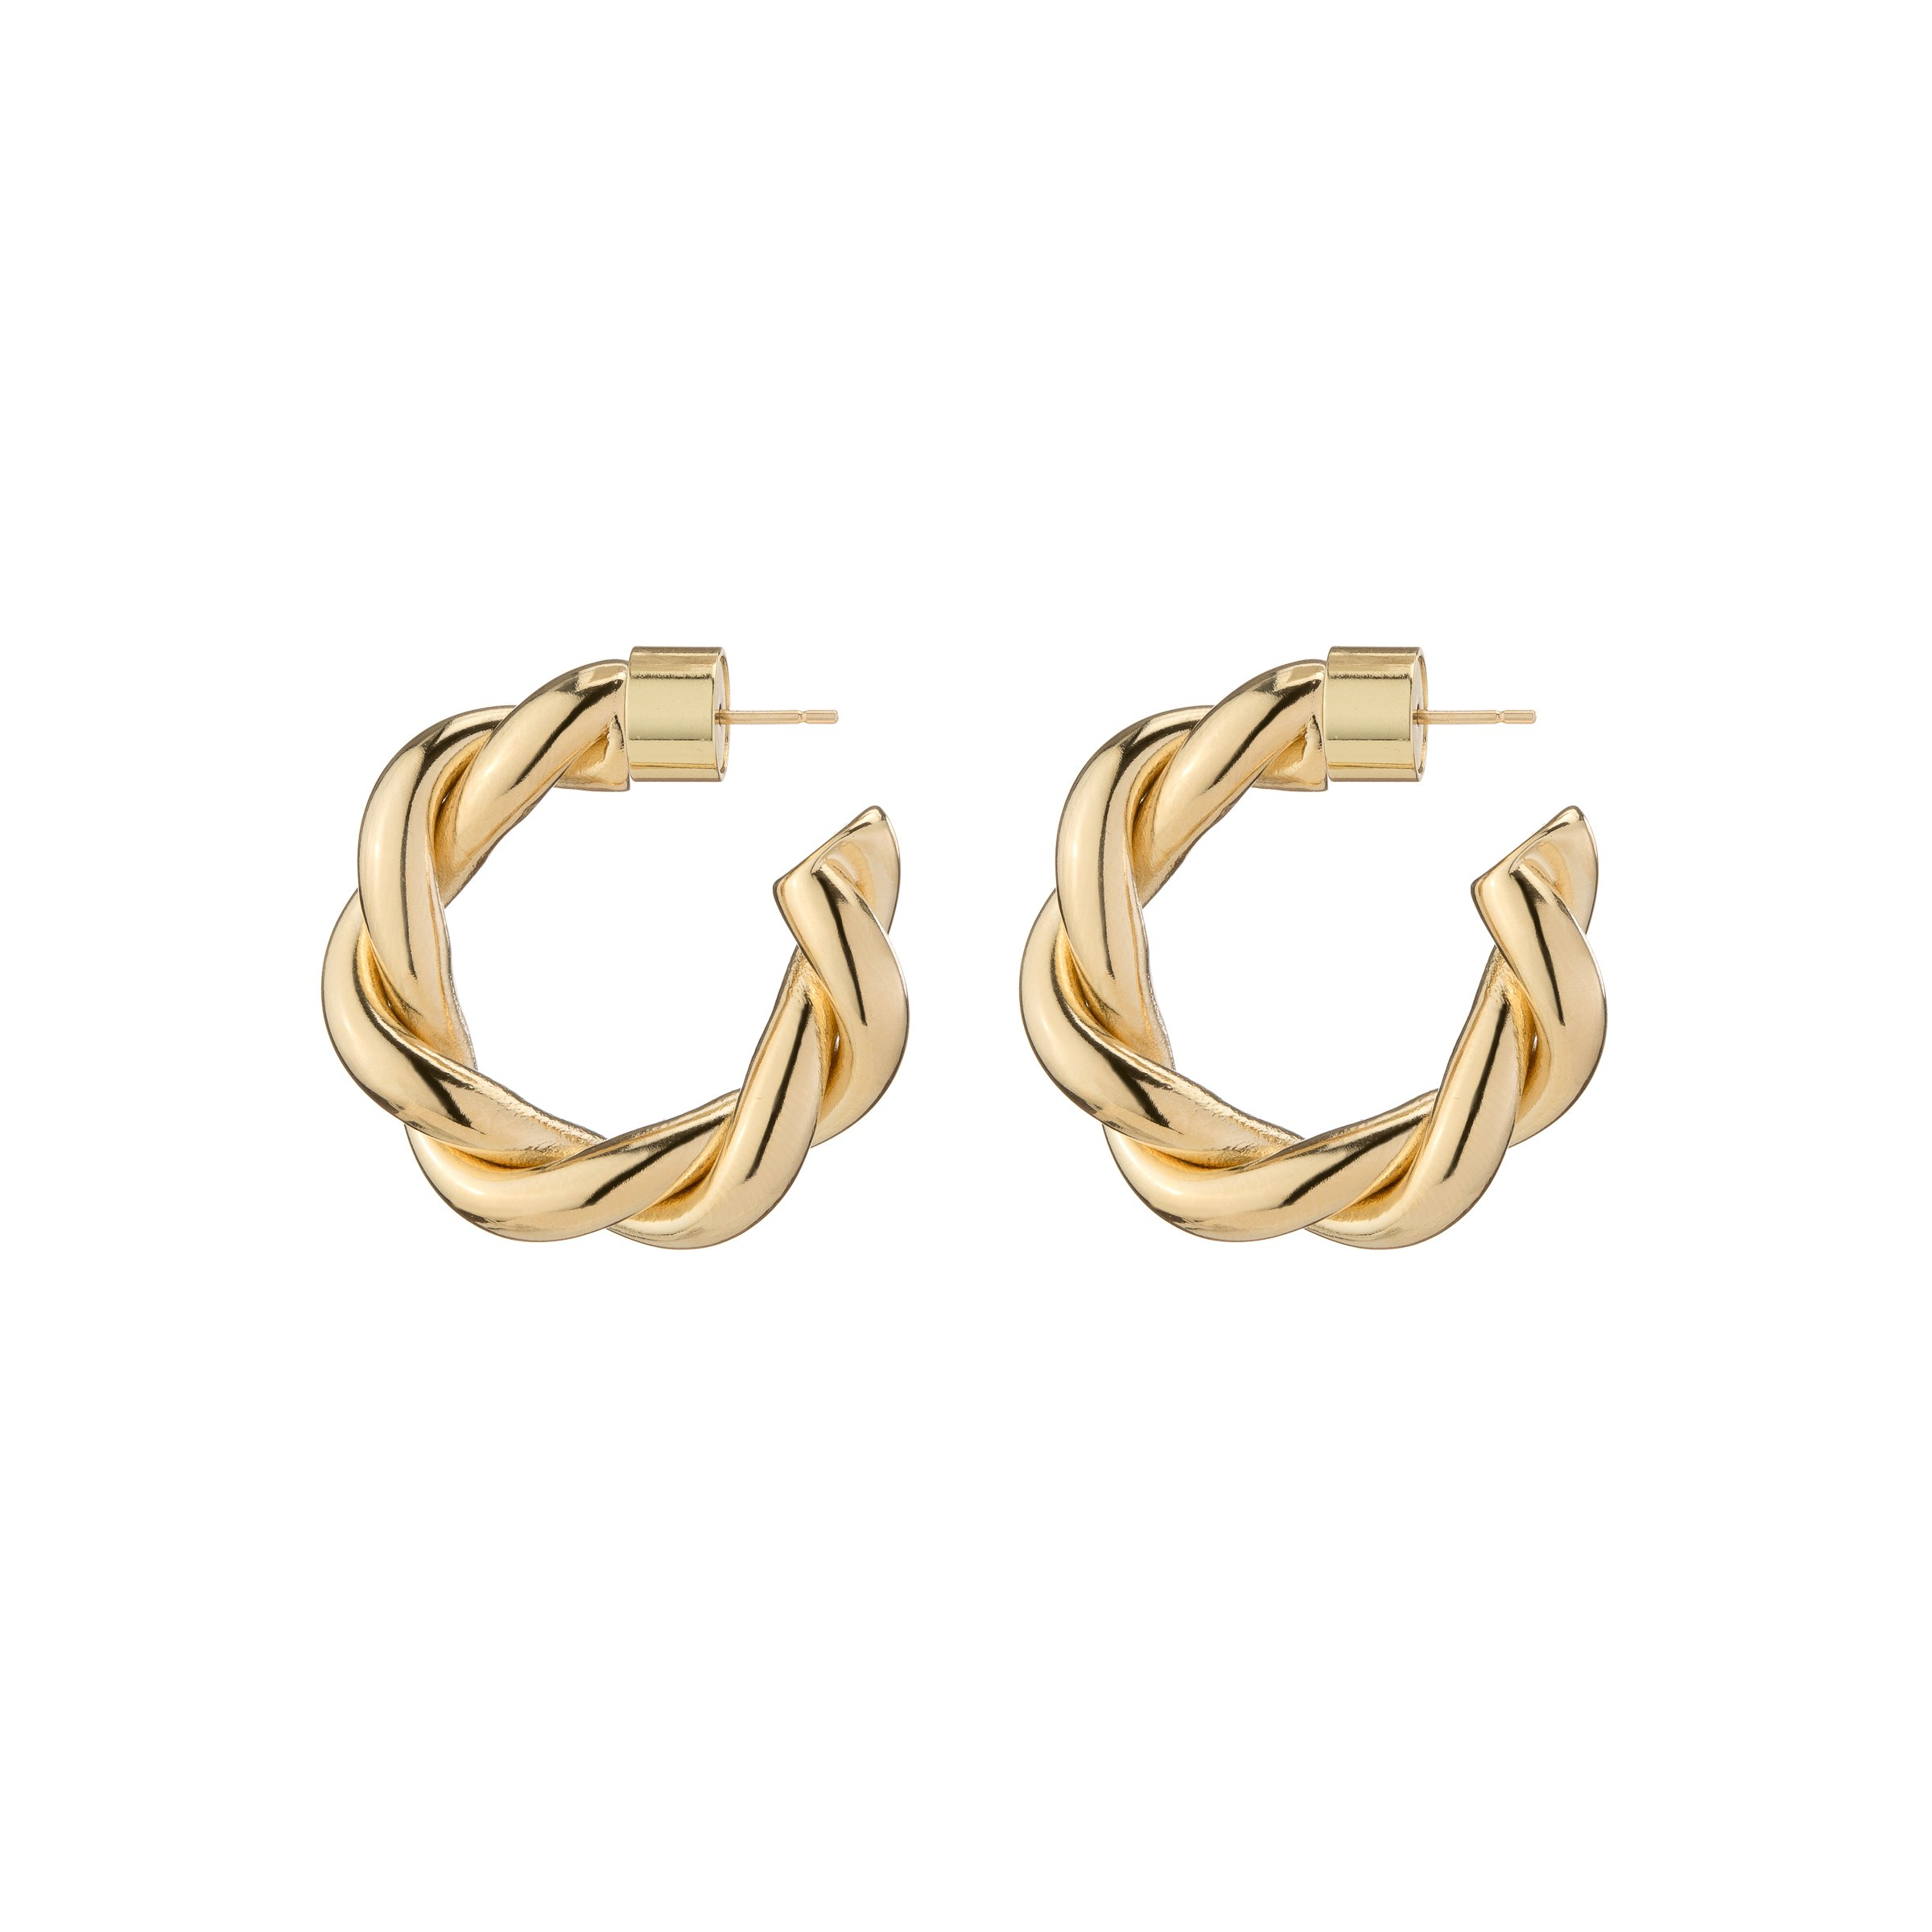 DOUBLE TWISTED LILLY HUGGIES by Jennifer-Fisher, available on jenniferfisherjewelry.com for $295 Hailey Baldwin Jewellery Exact Product